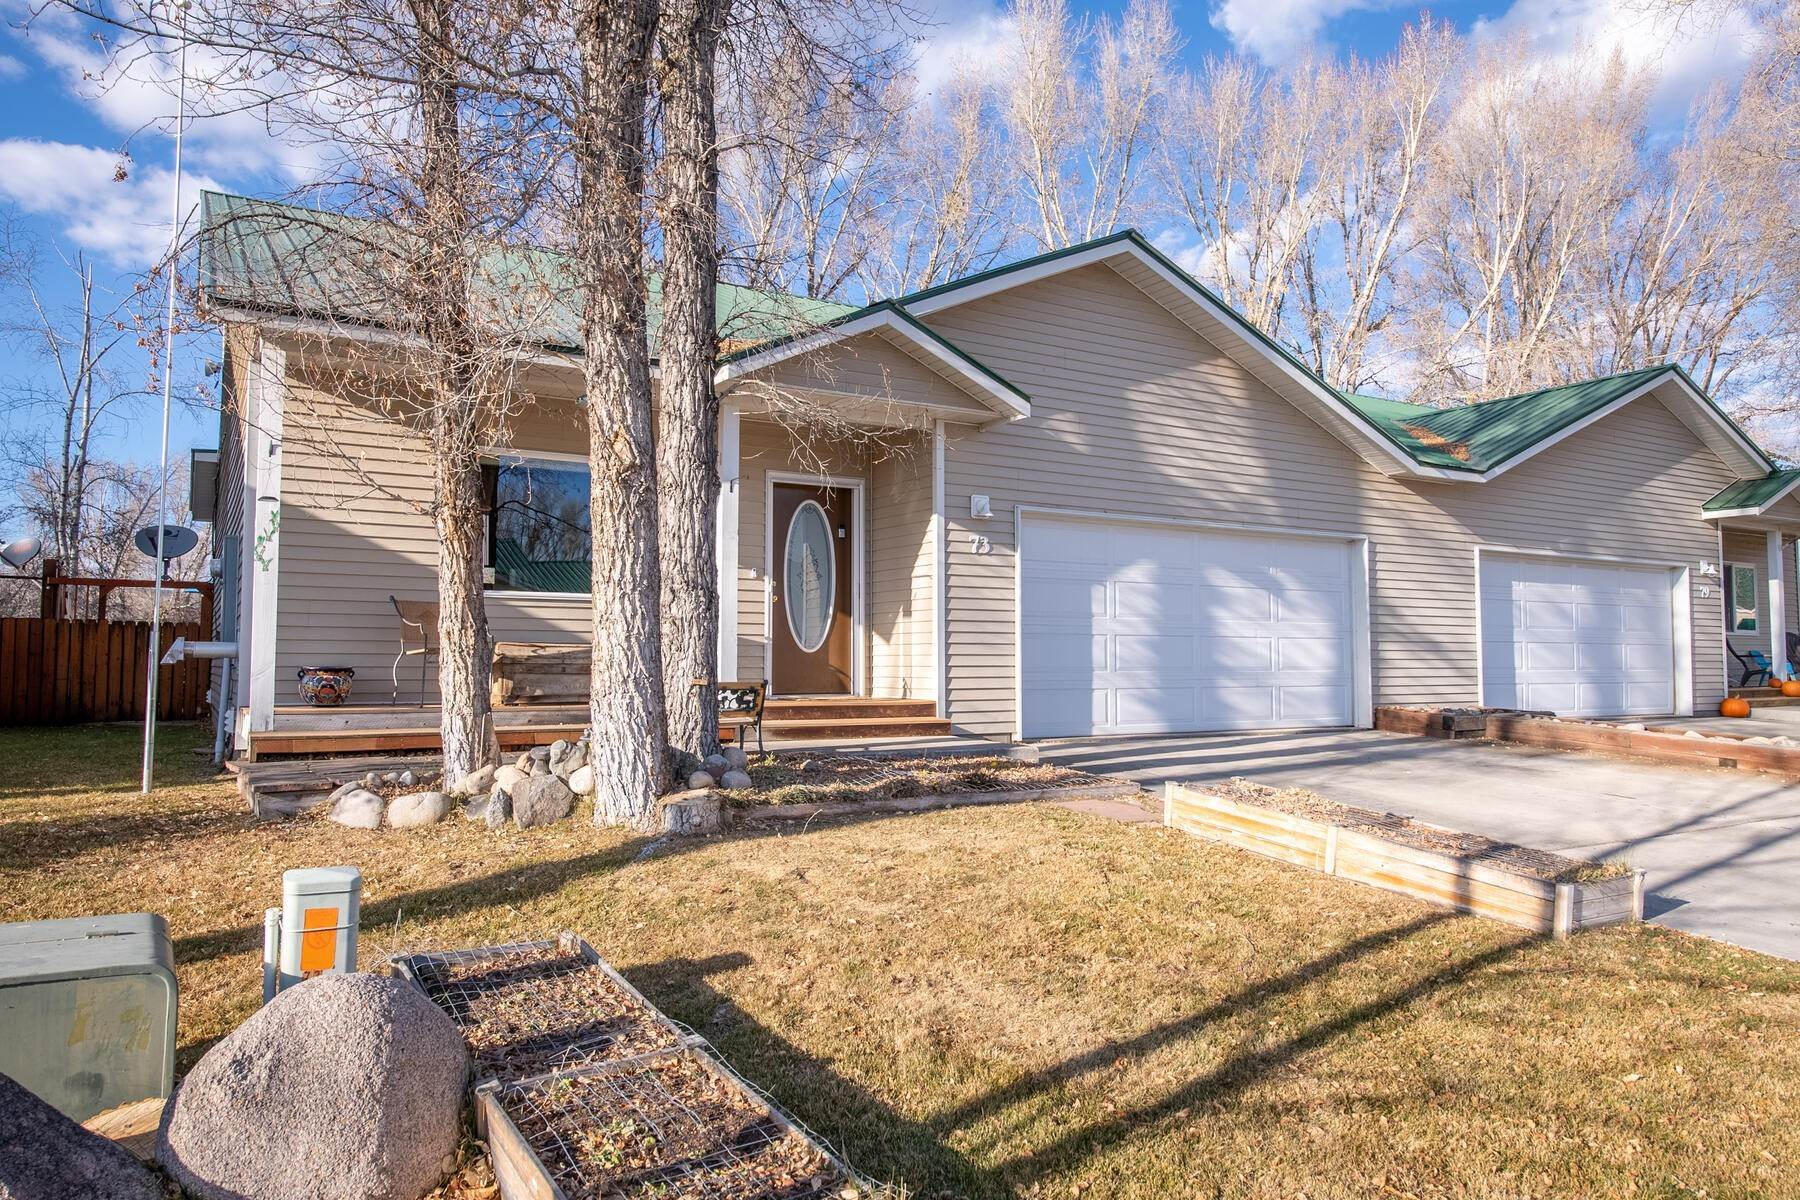 townhouses for Active at Spacious Townhouse with Covered Deck and Plenty of Storage 73 Bambi Lane Gunnison, Colorado 81230 United States